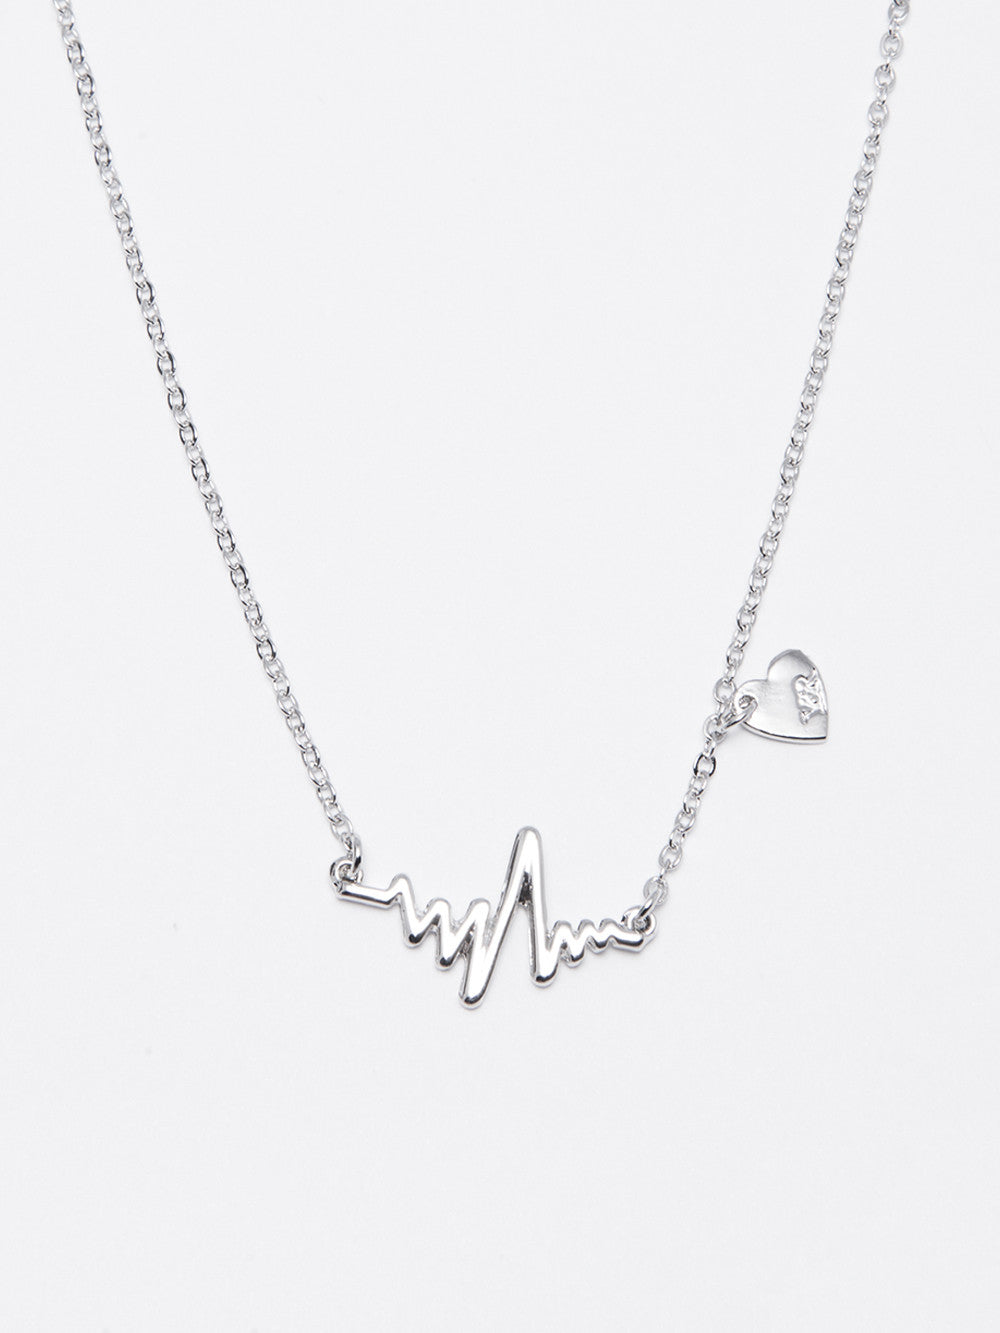 Silver Pulse Necklace